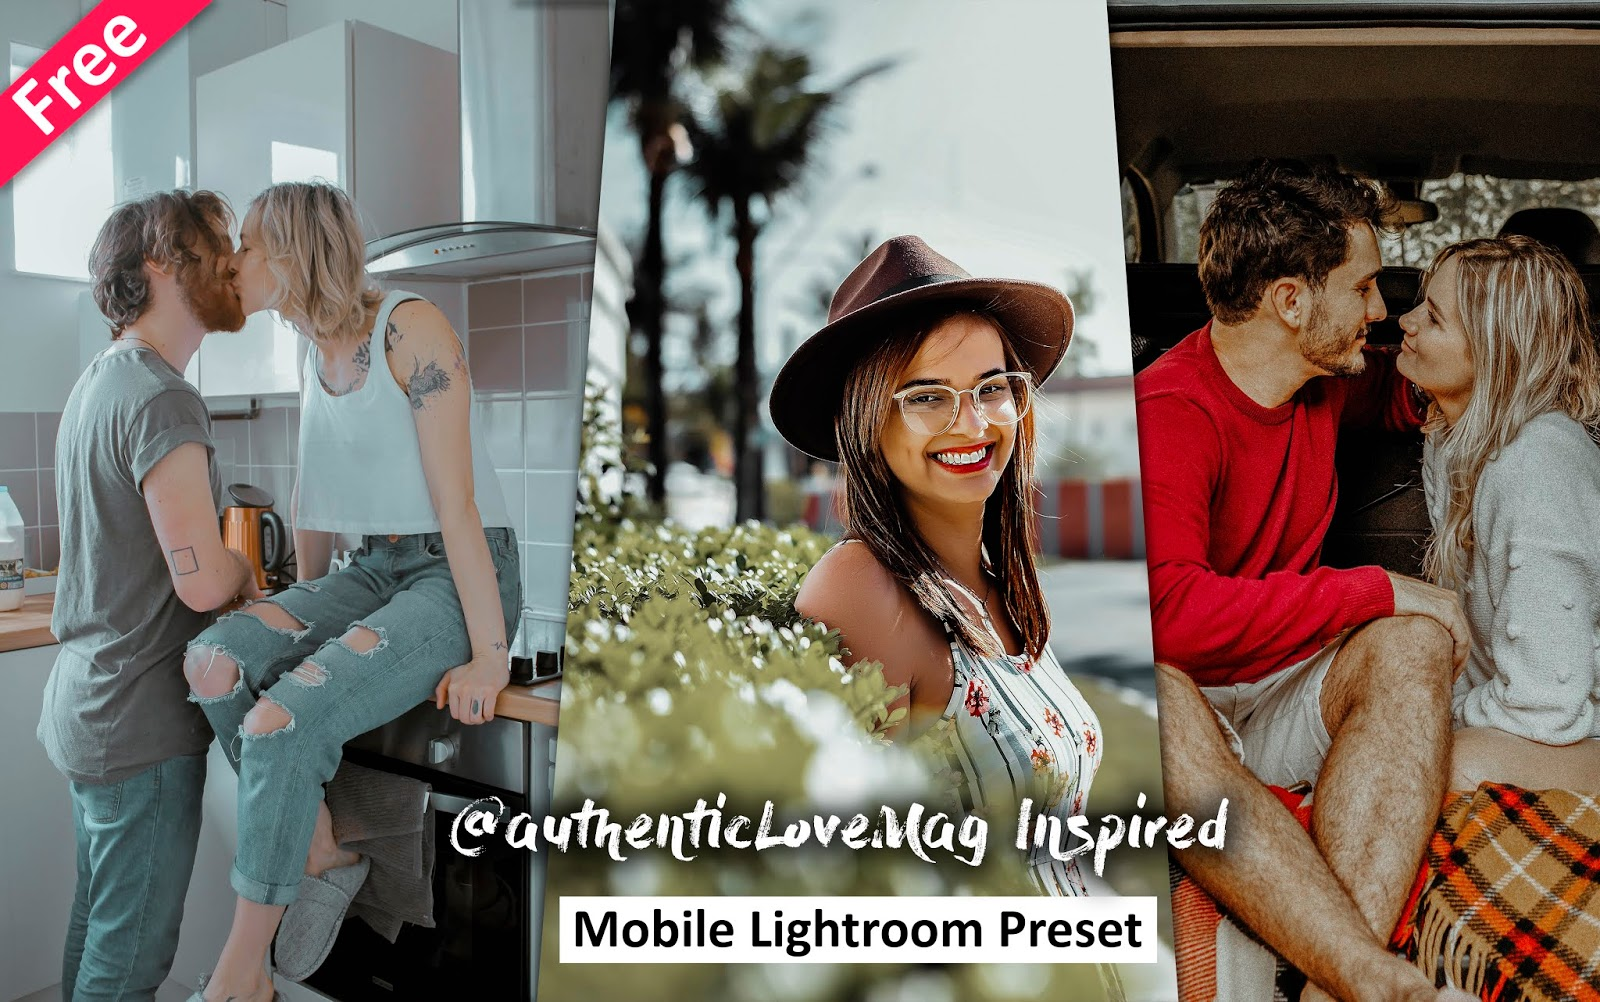 Download AuthenticLoveMag Inspired Mobile Lightroom Preset for Free   How to Edit Photos Like AuthenticLoveMag in Mobile Lightroom App